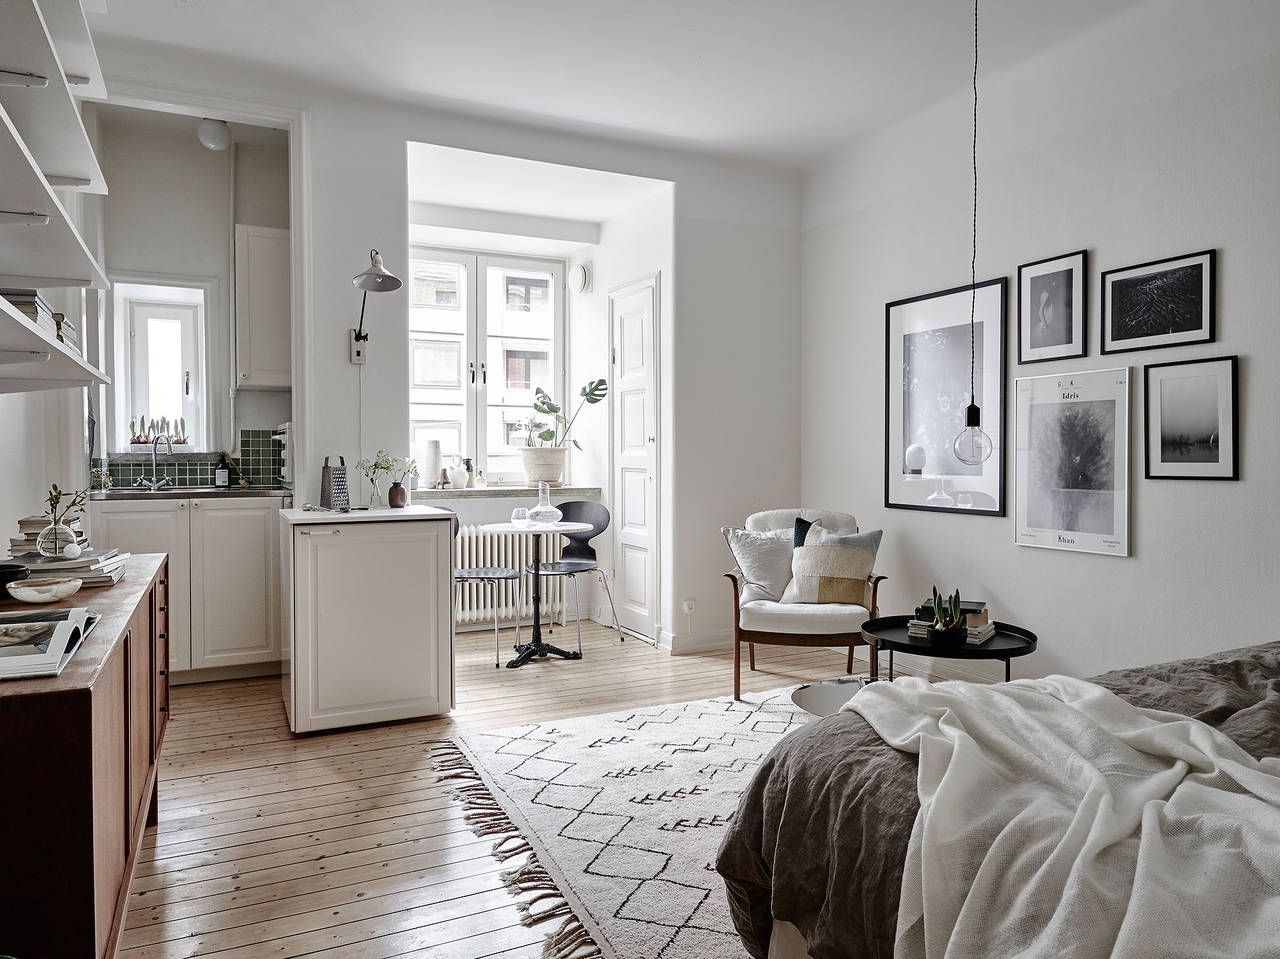 Design of odnushki: tricks for a small space - options and ideas (with photo) 7